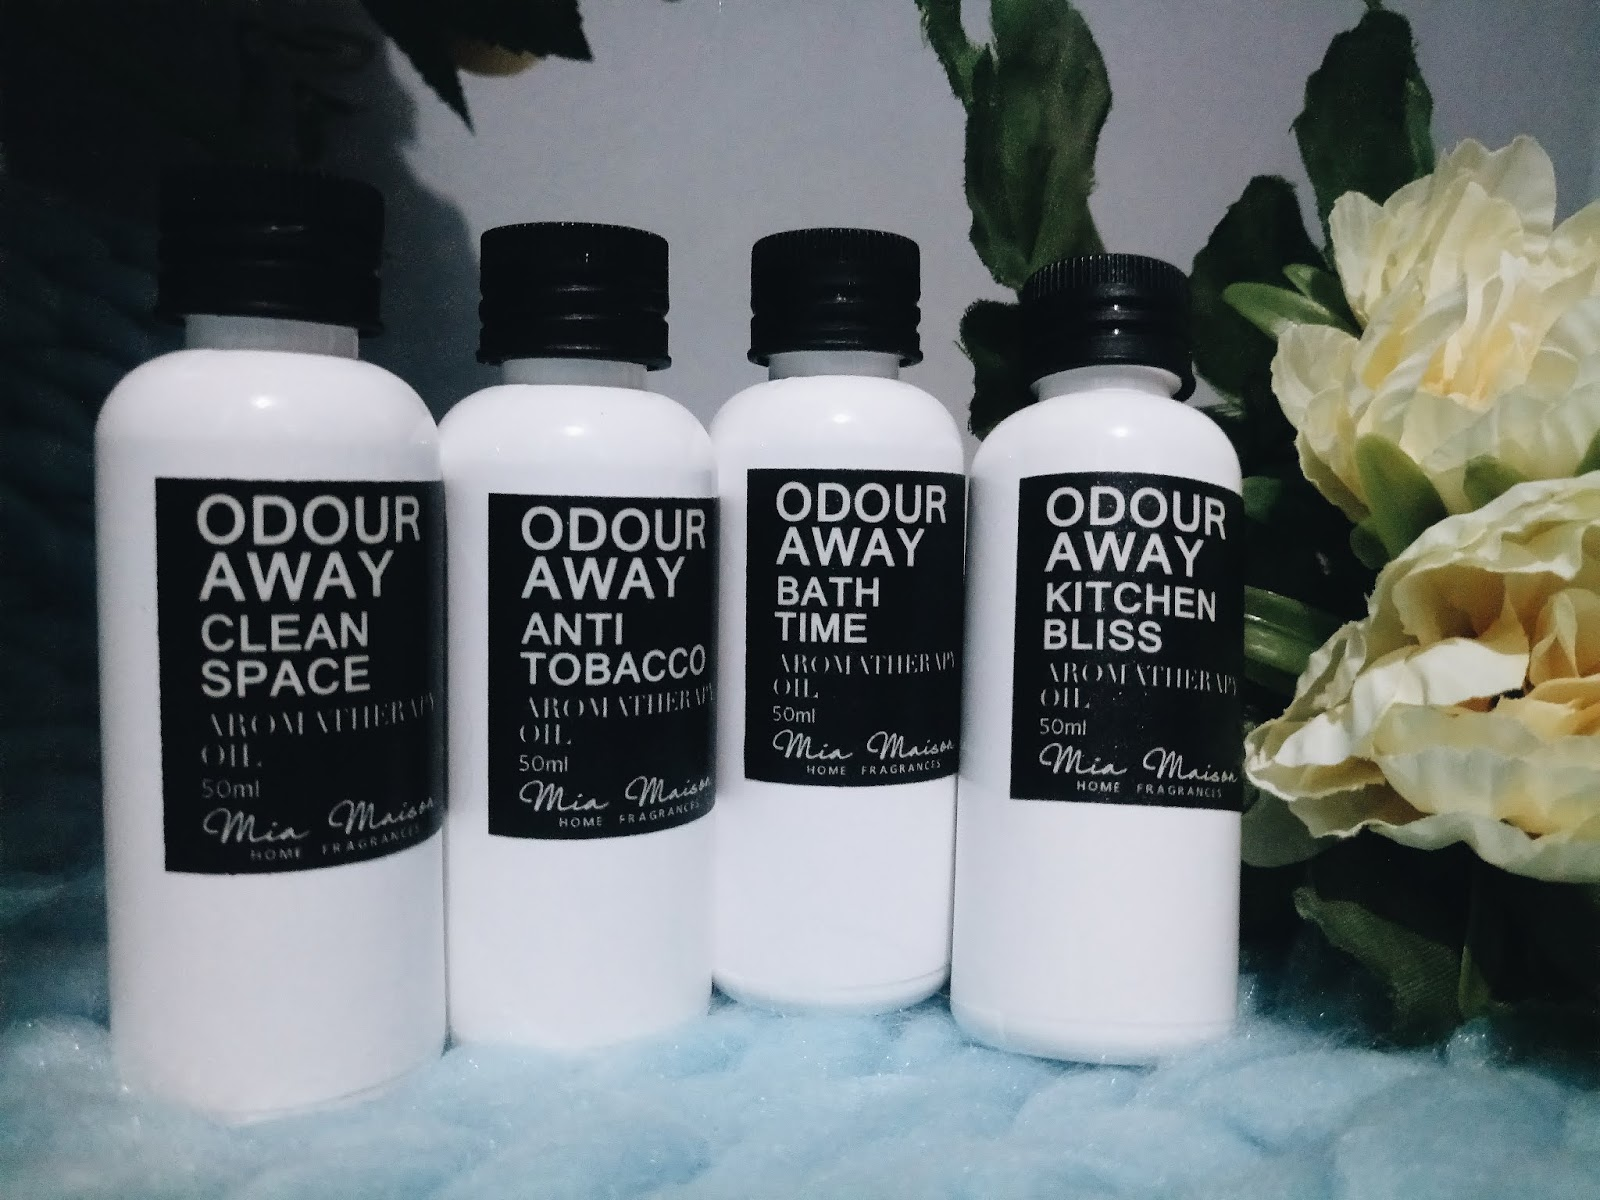 Odour Away Aromatherapy Oil by Mia Maison Home Fragrances